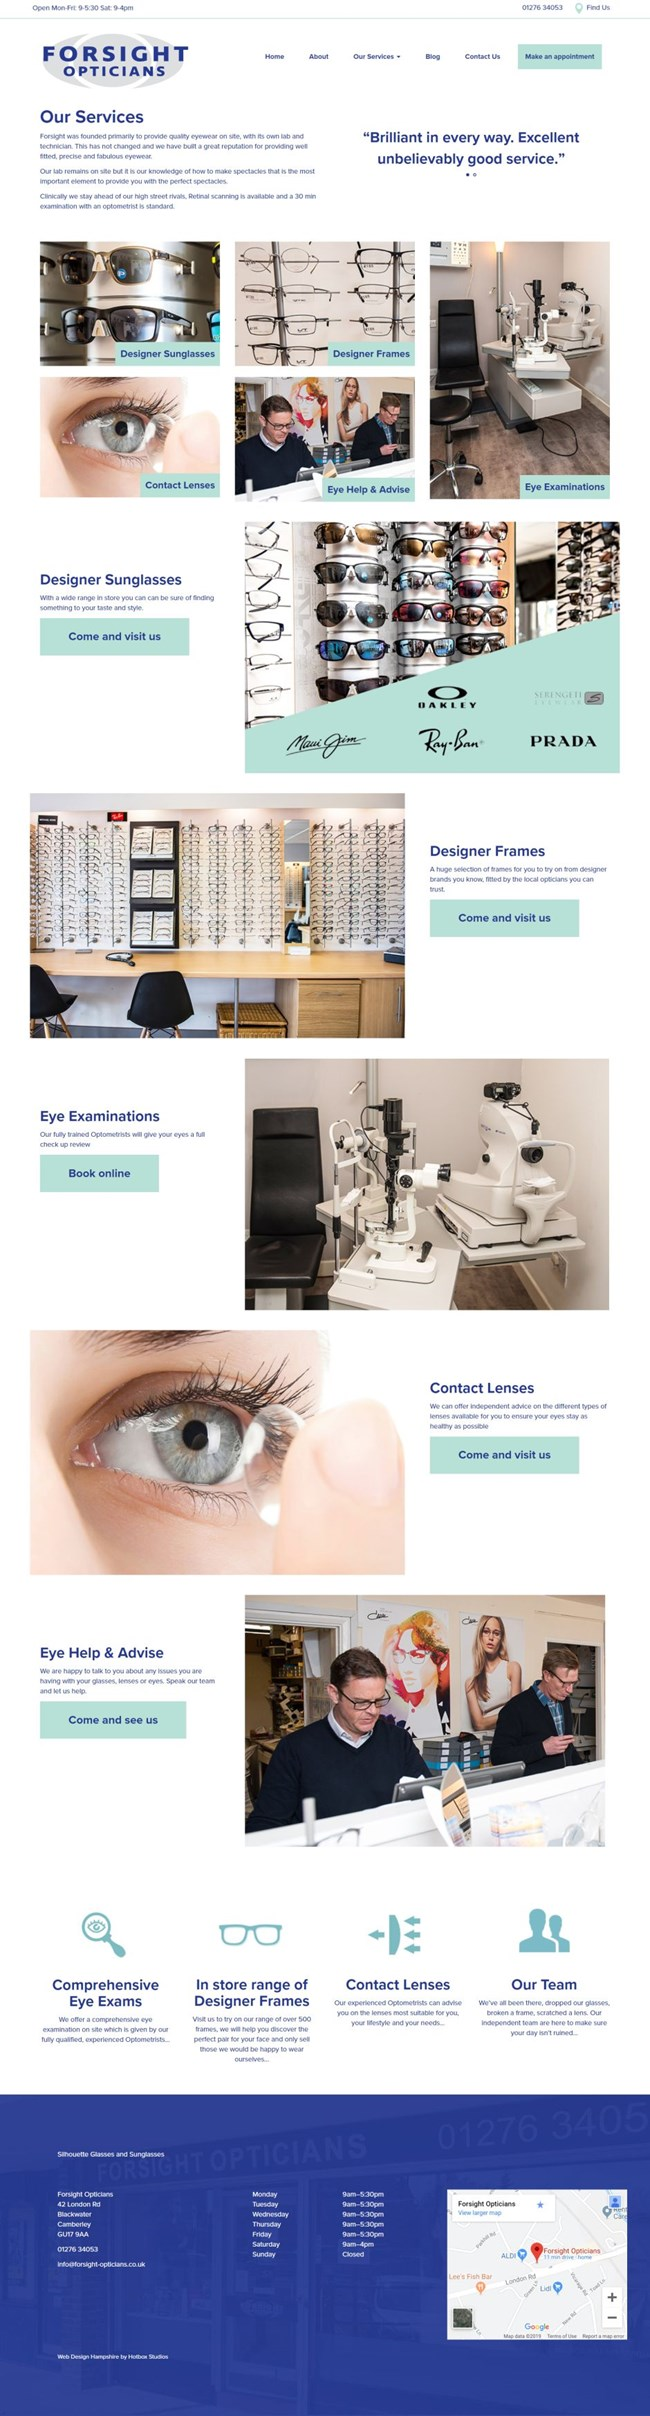 Forsight Opticians Wordpress Web Design SP003 Services